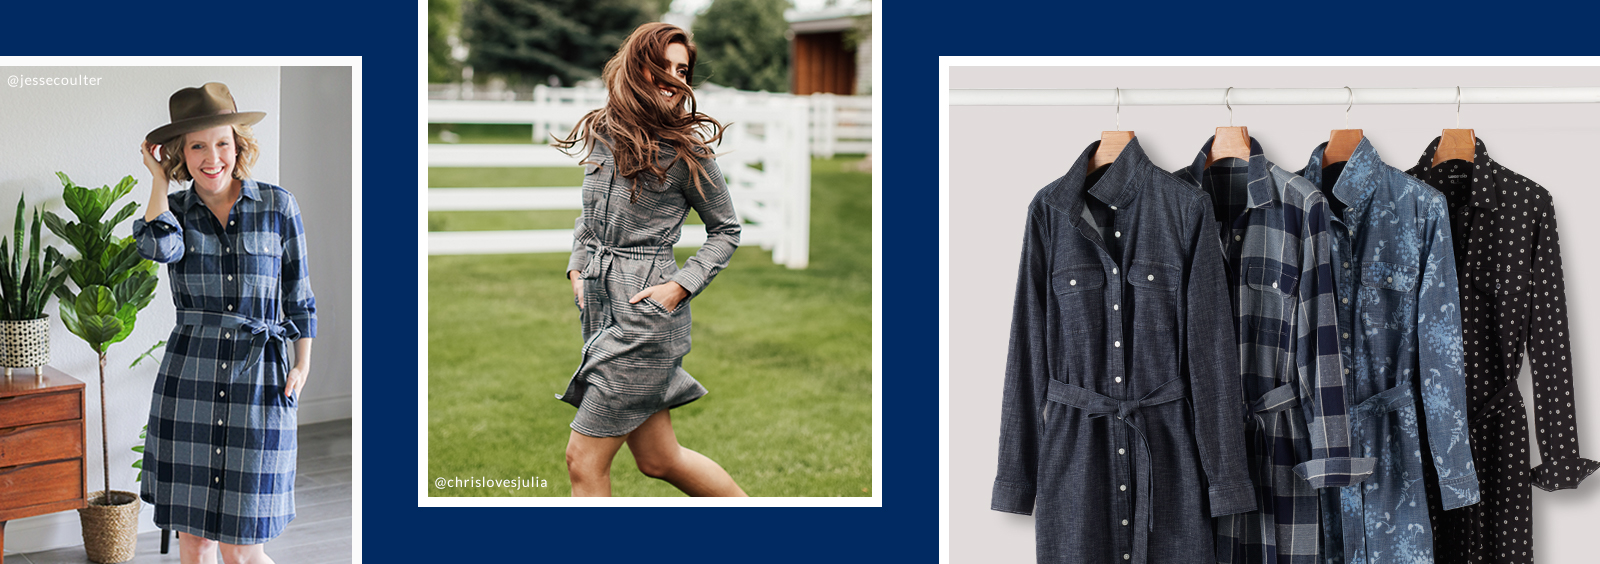 What to wear for a casual fall outdoor wedding